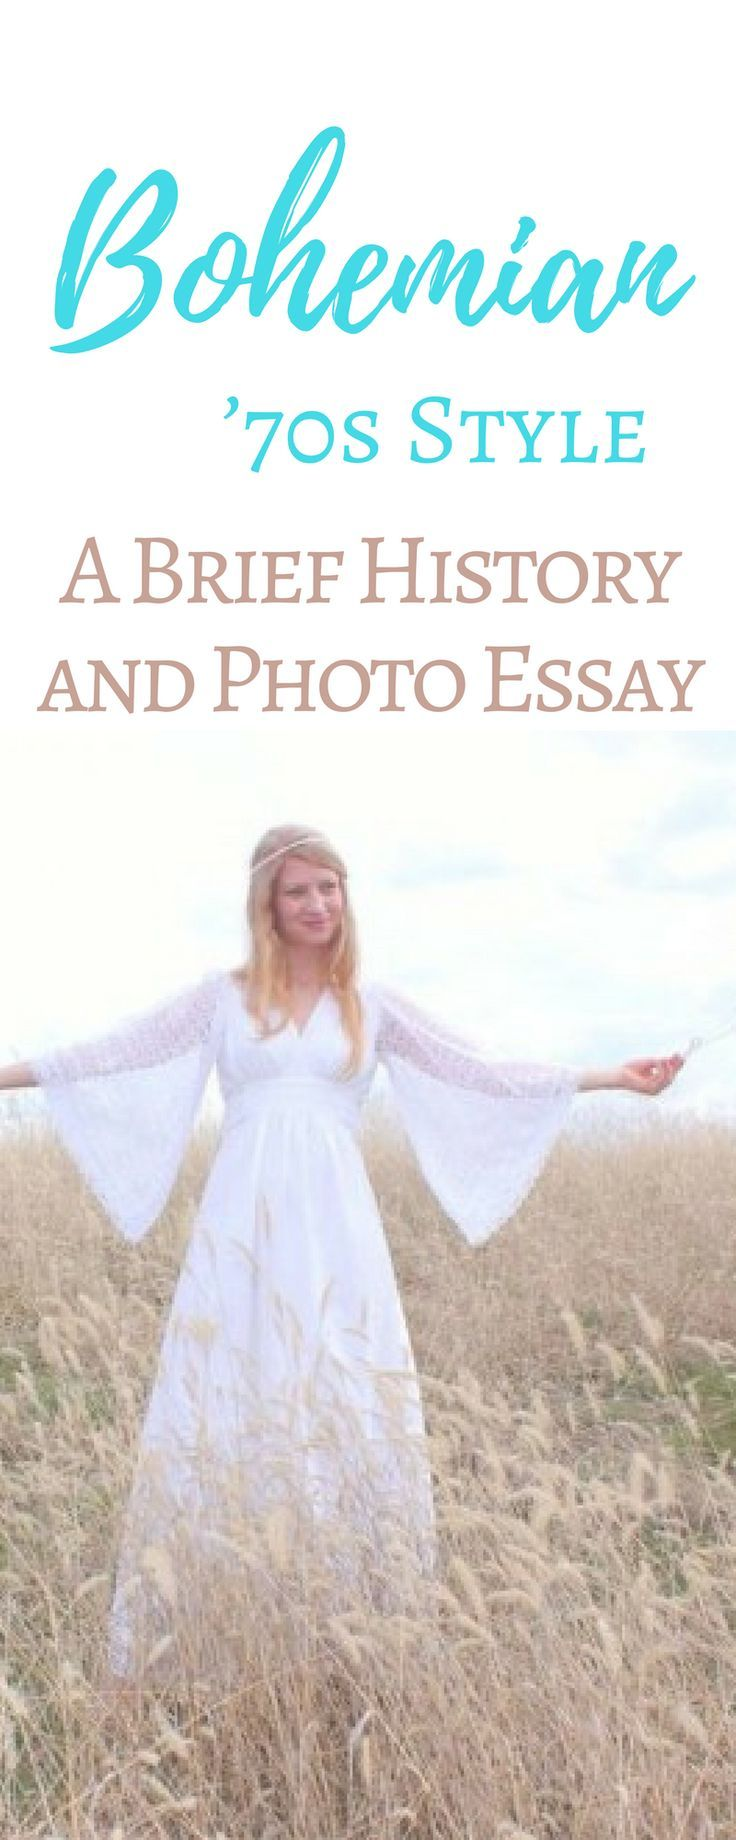 must see fashion essay pins handwriting worksheets bohemian 70s style a brief history and photo essay